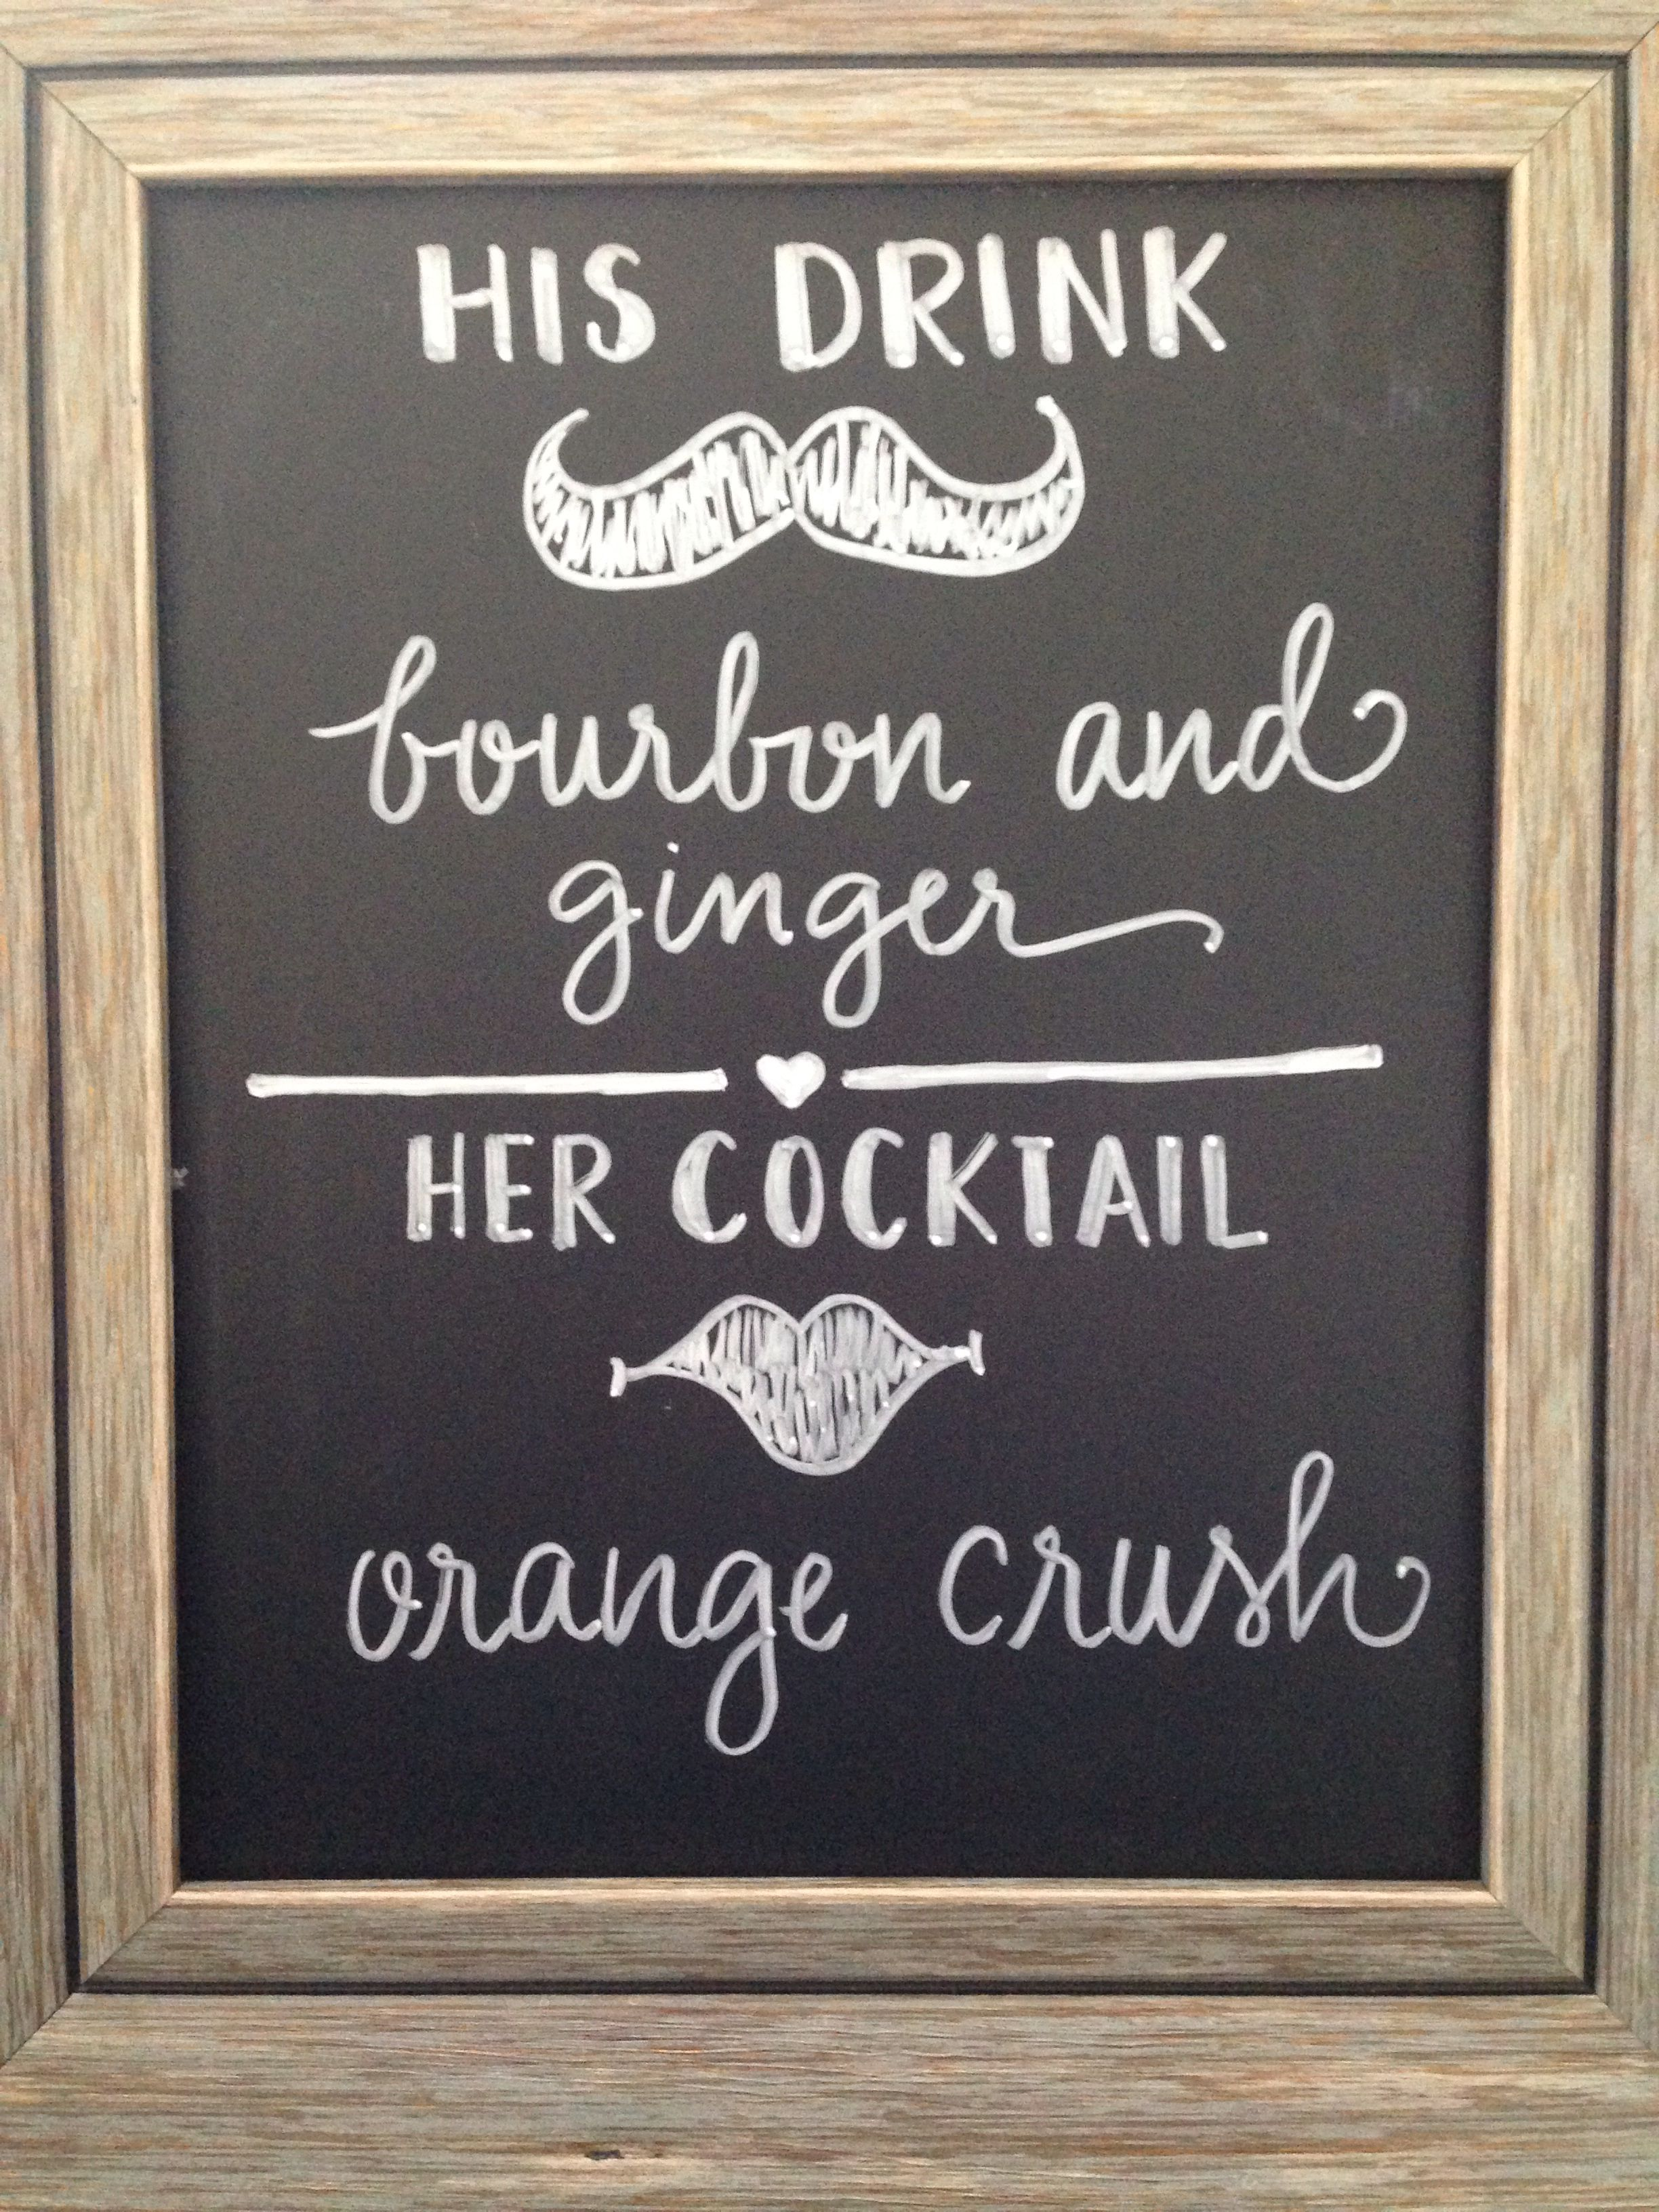 Wedding bar signs. Custom his and hers signature drink